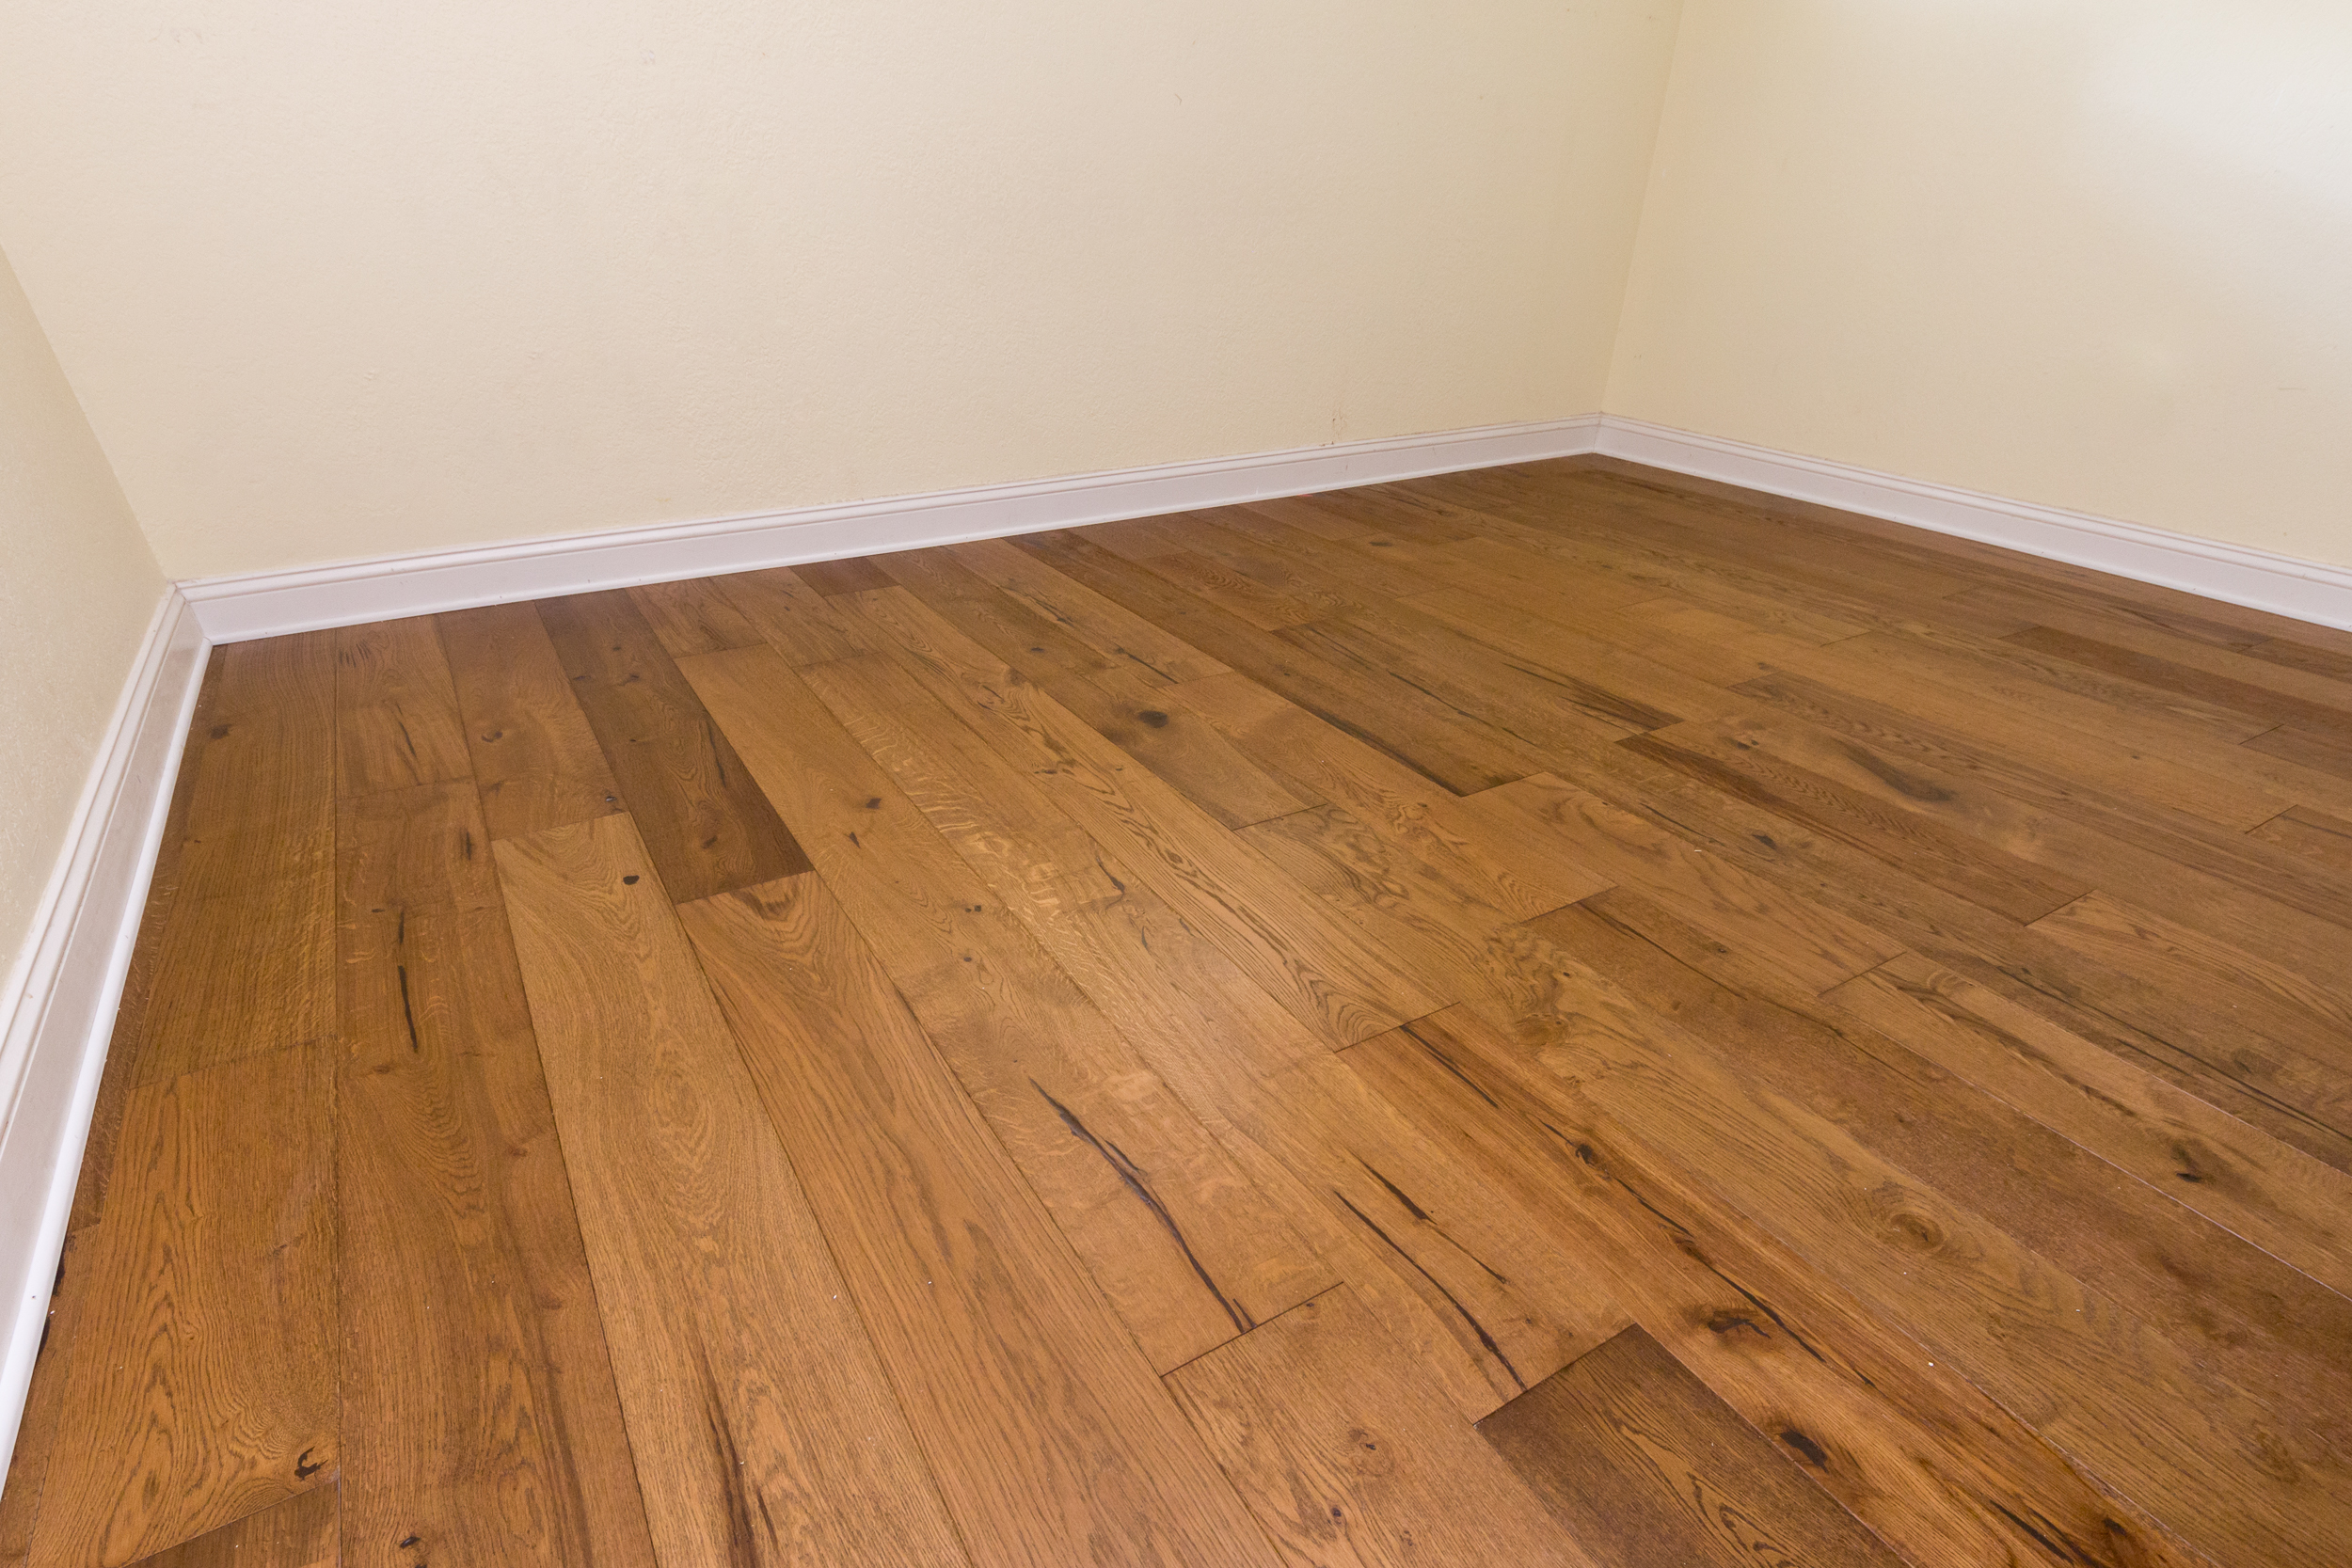 European White Oak flooring corner view